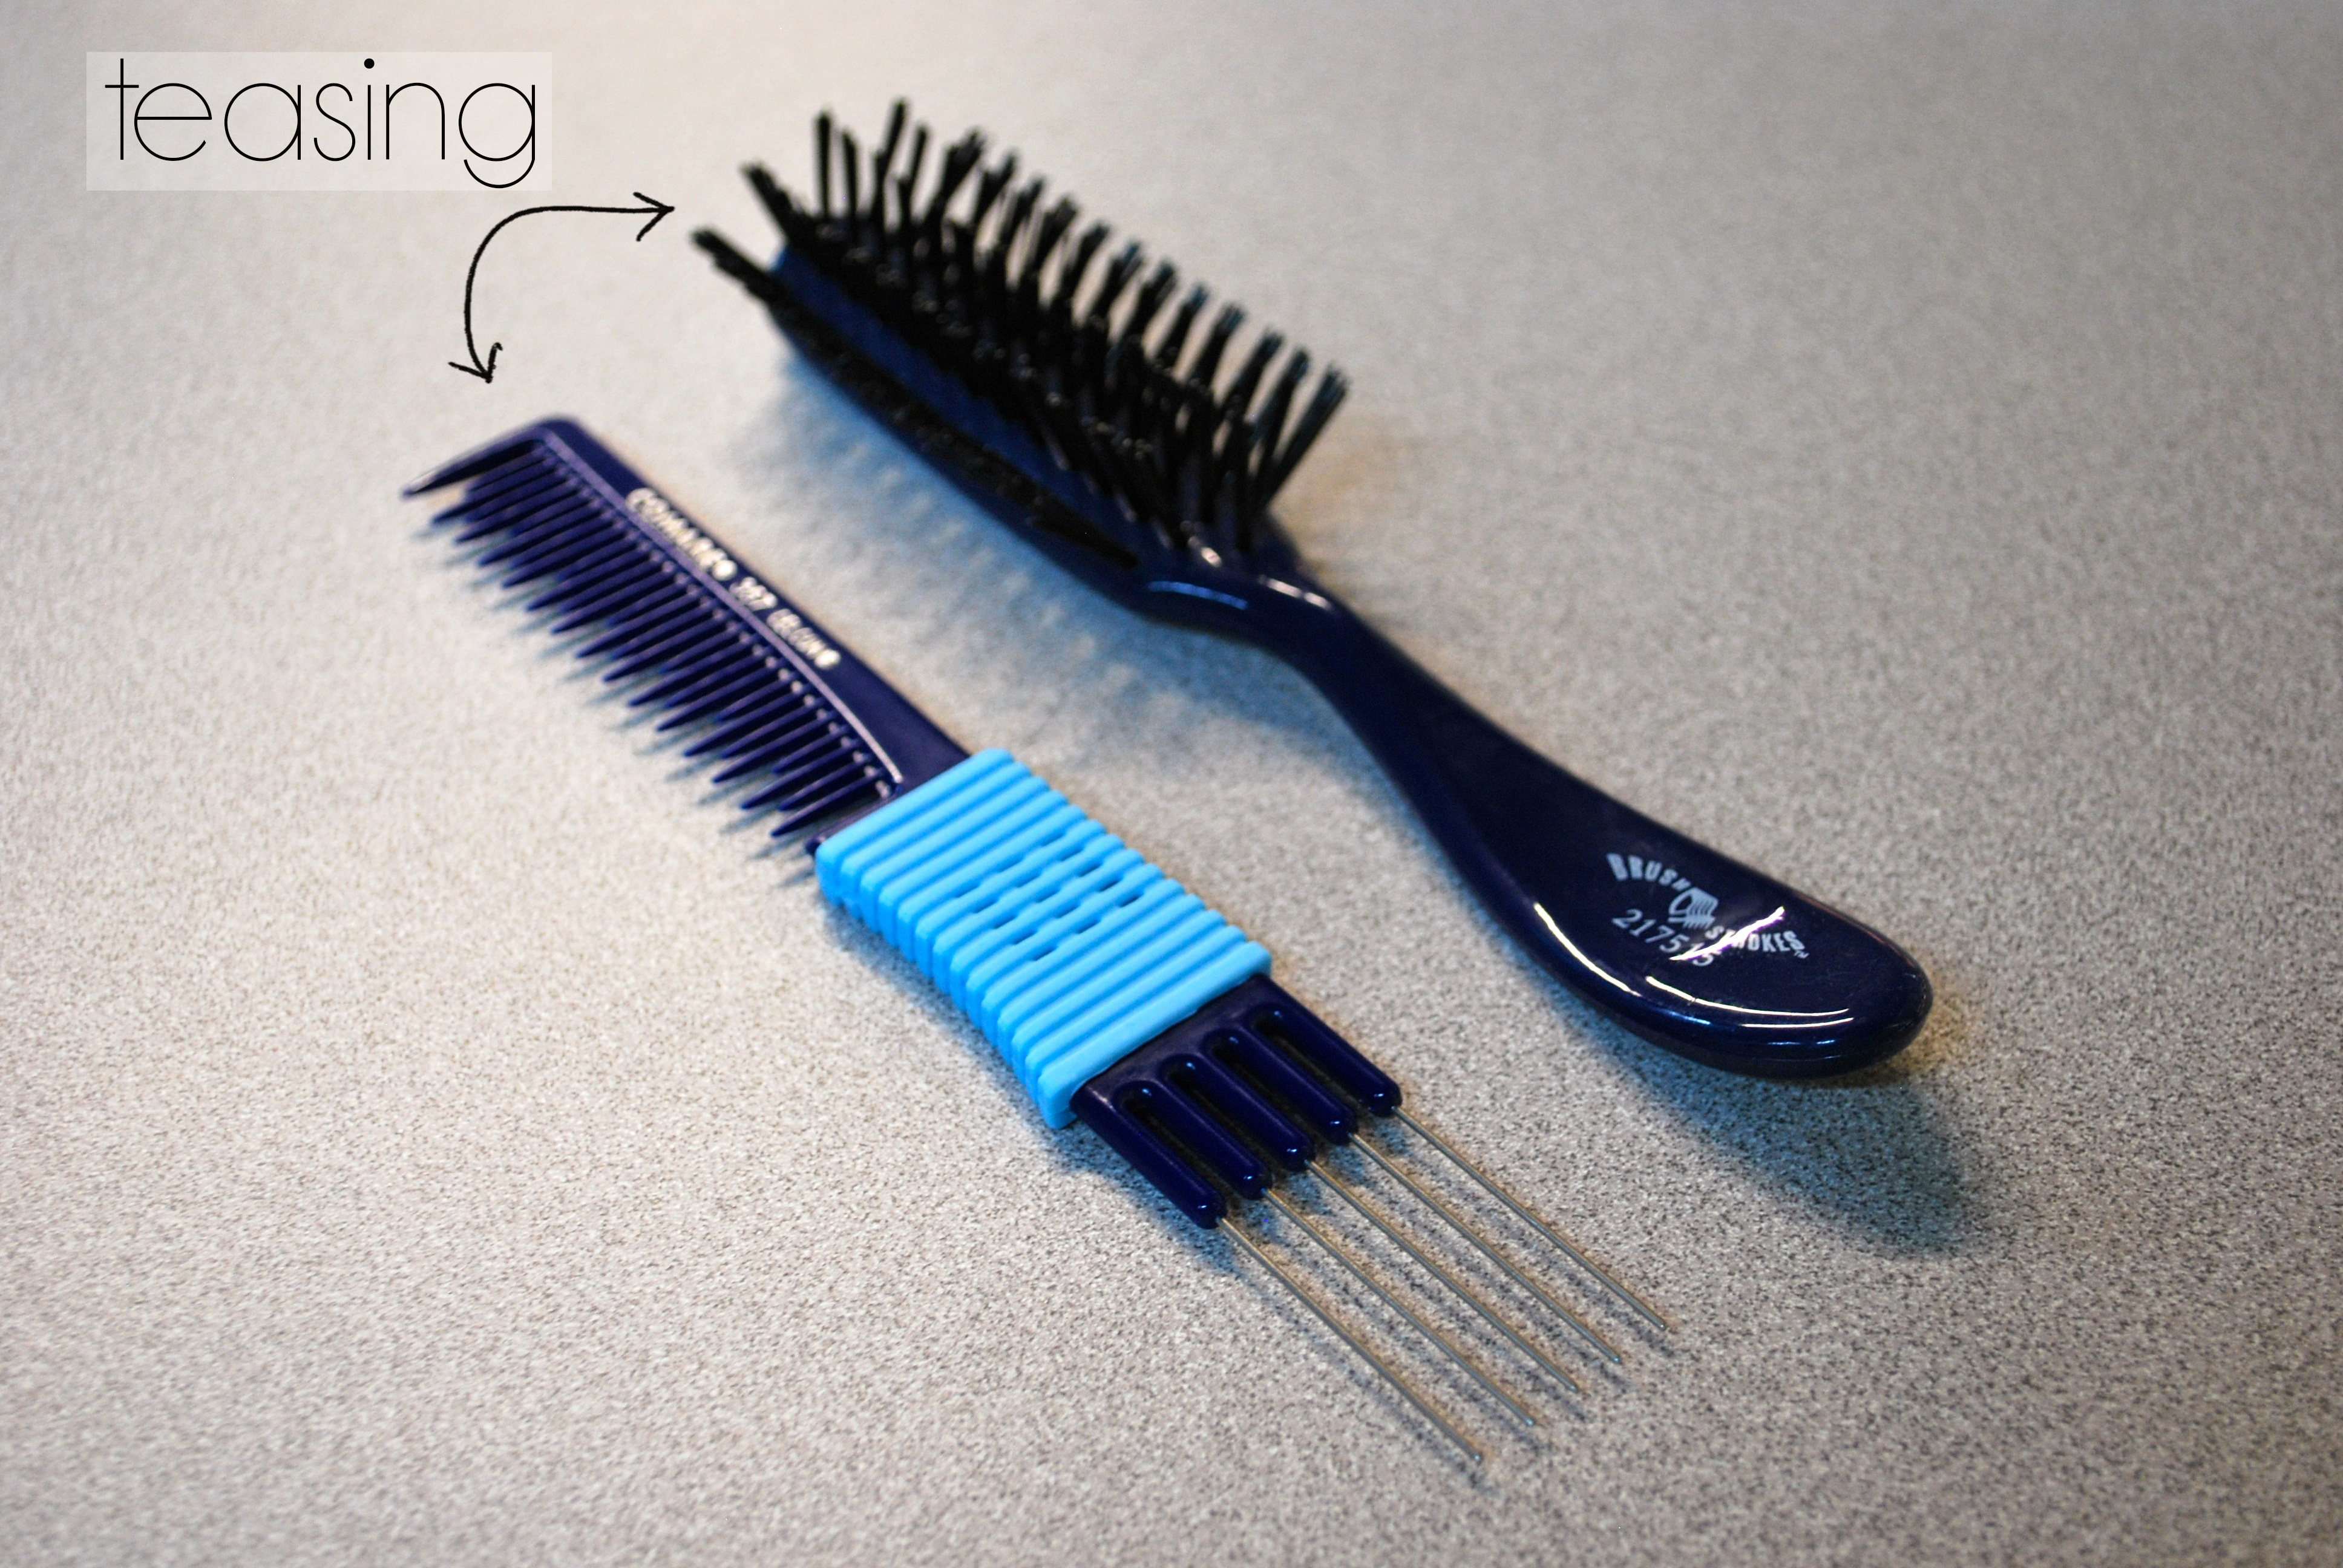 Teasing Brush & Comb